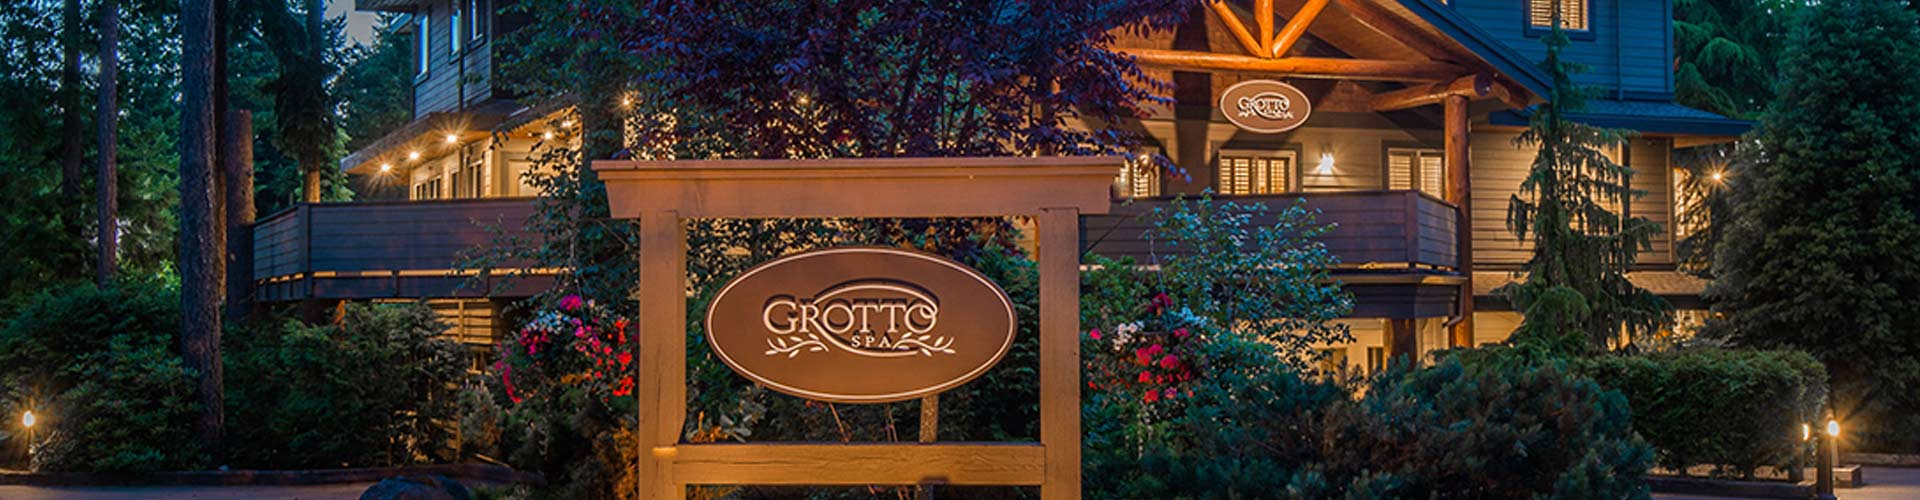 About the grotto spa